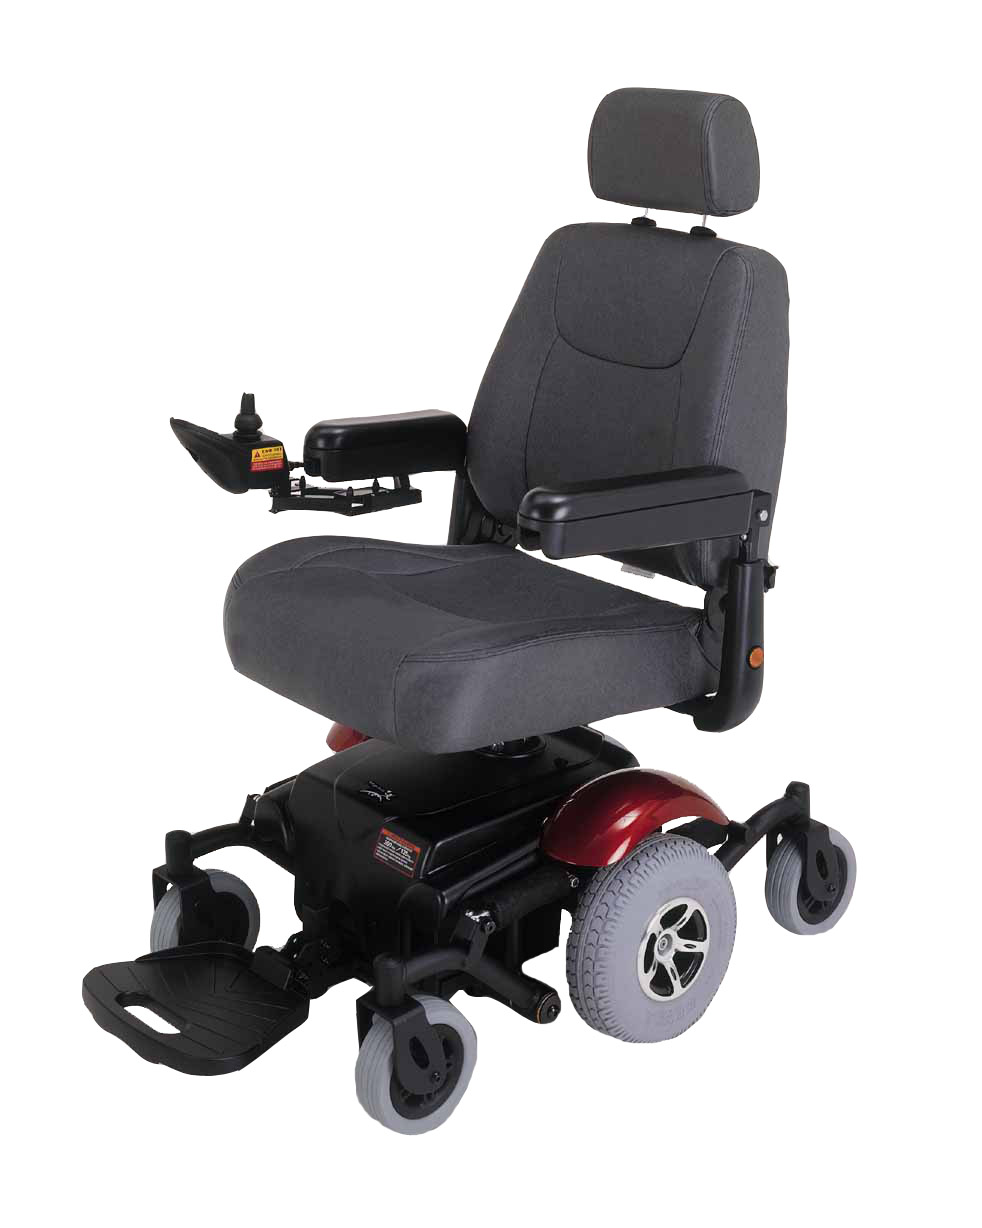 safe use instrs electric wheel chair, electric wheelchair batterys, electric wheelchair charger, electric wheel chair scotter